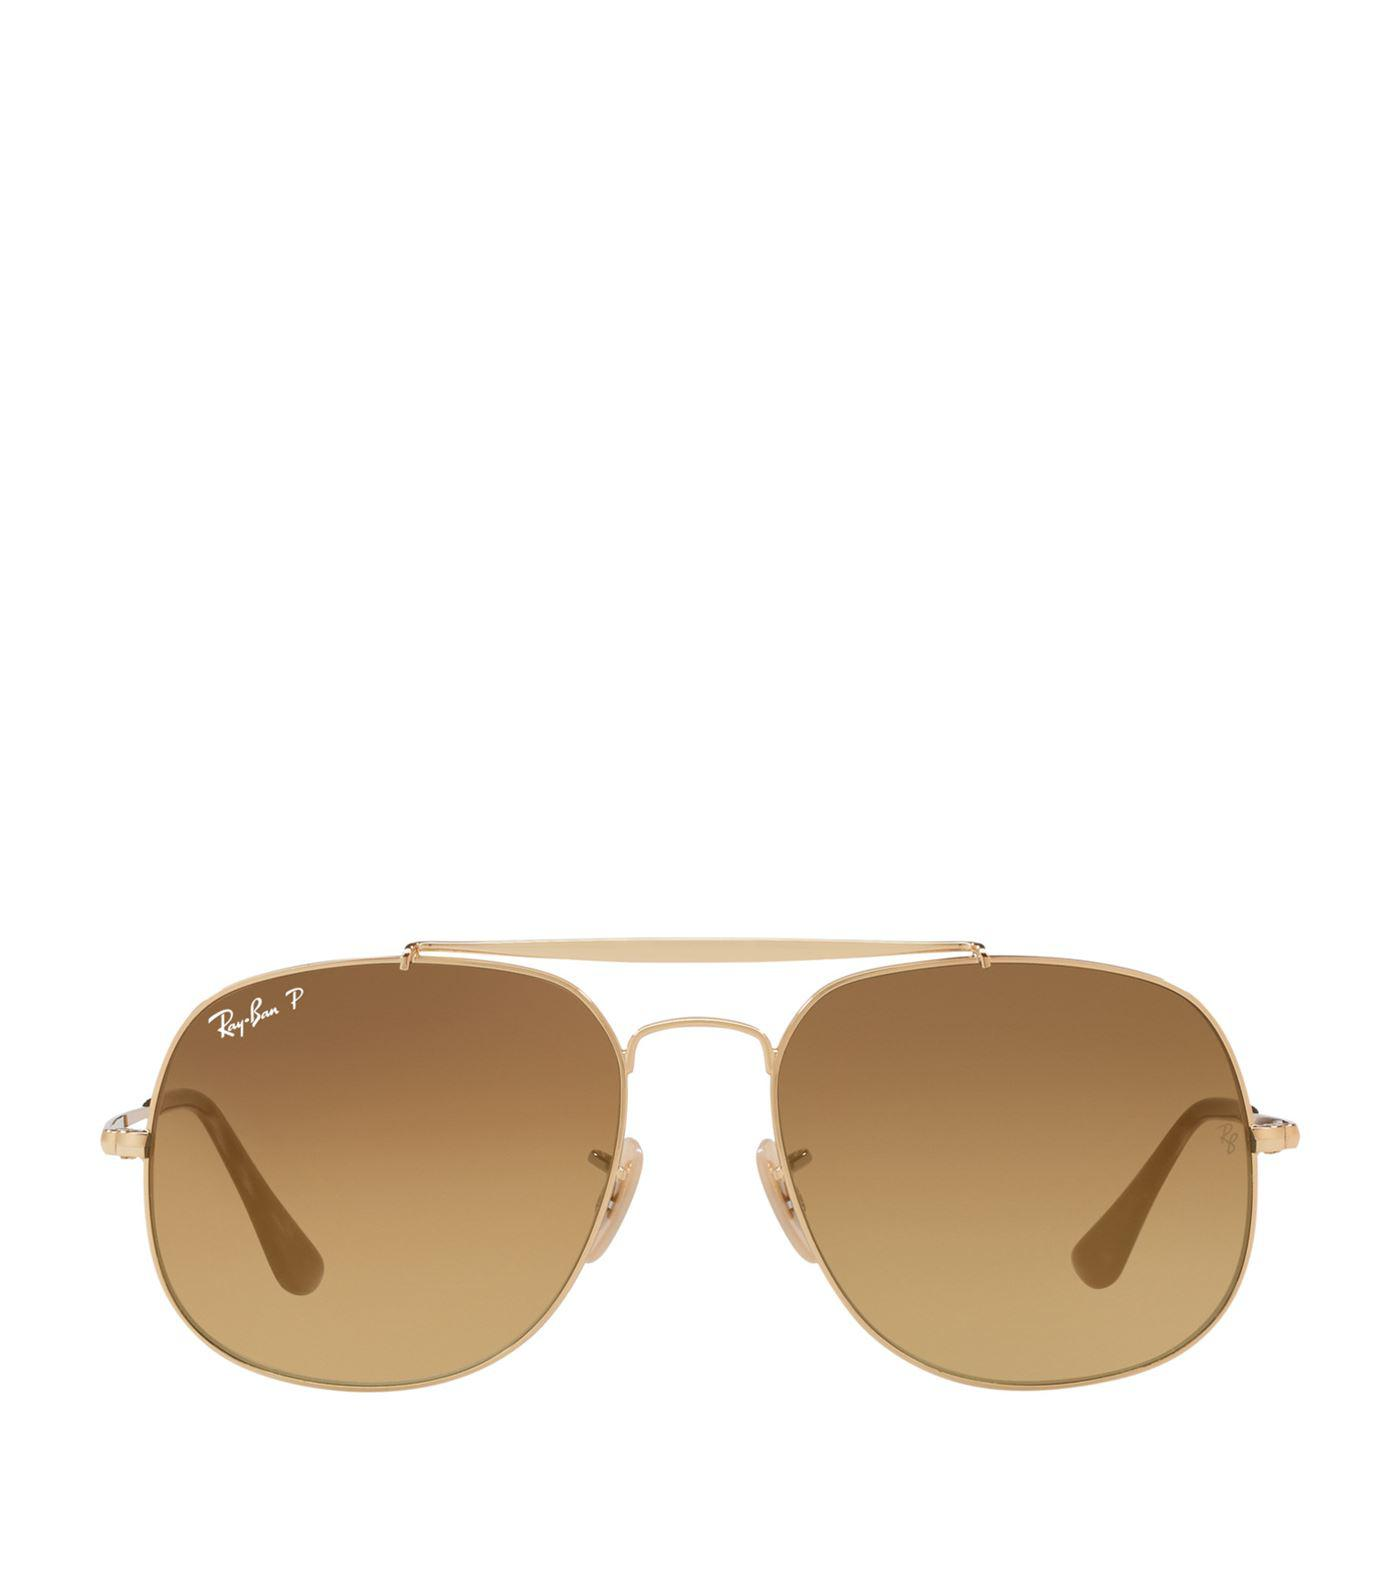 aa97180219 Ray-Ban Aviator Sunglasses in Brown - Save 1.05263157894737% - Lyst